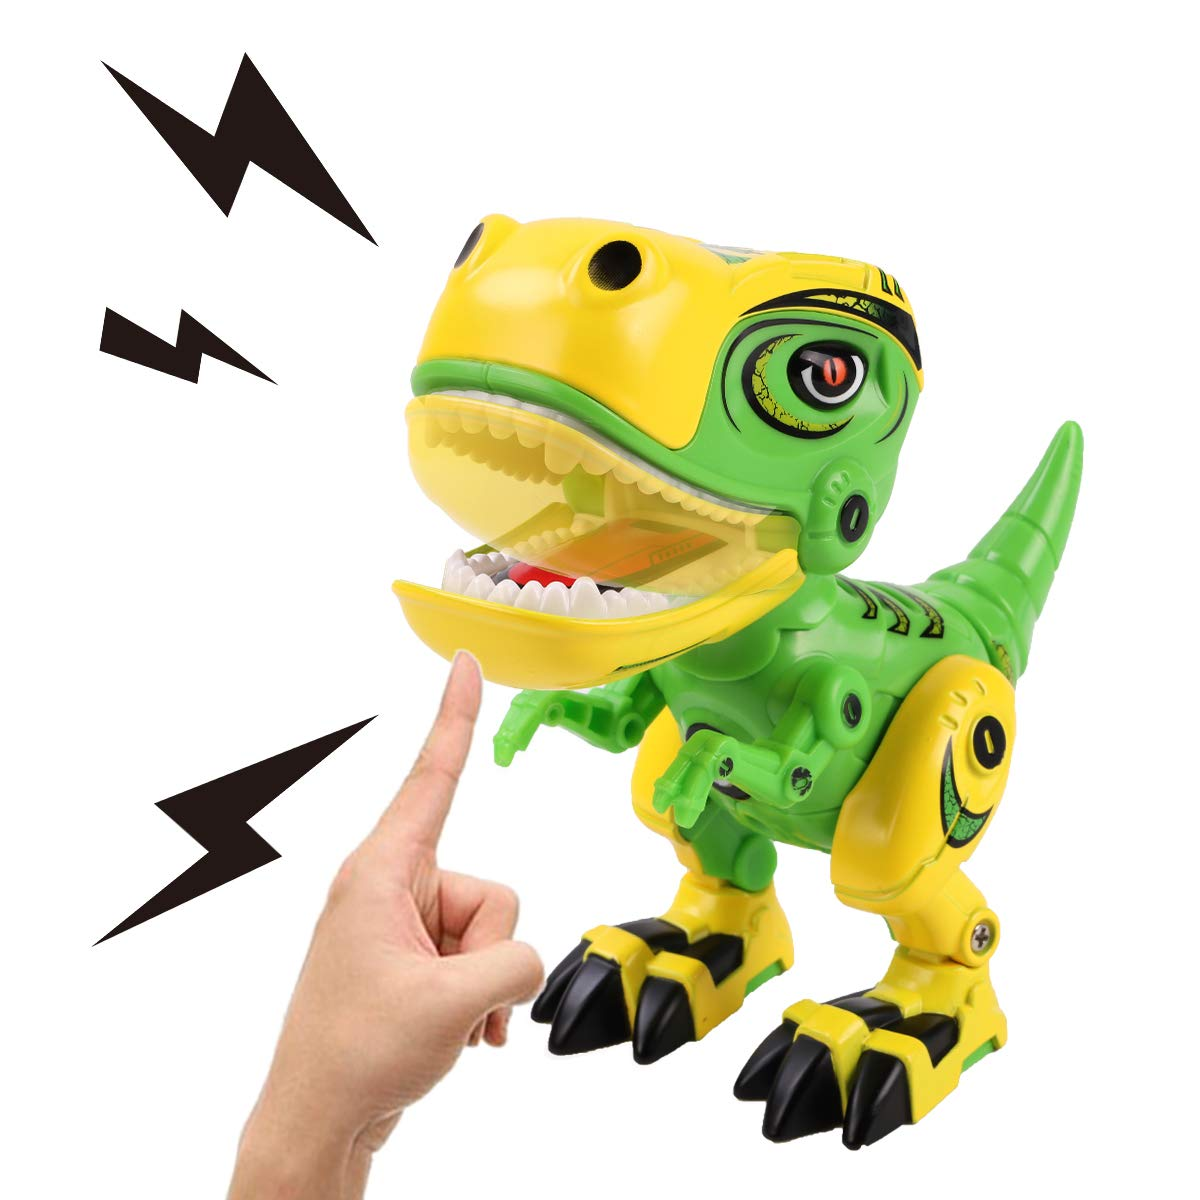 GILOBABY Dinosaur Toys for Kids, Alloy Metal Mini Tyrannosaurus Rex Dinosaur with Shine Eyes and Roaring Sound, Flexible Body, Gift for Toddlers Boys Girls (Green) by GILOBABY (Image #4)